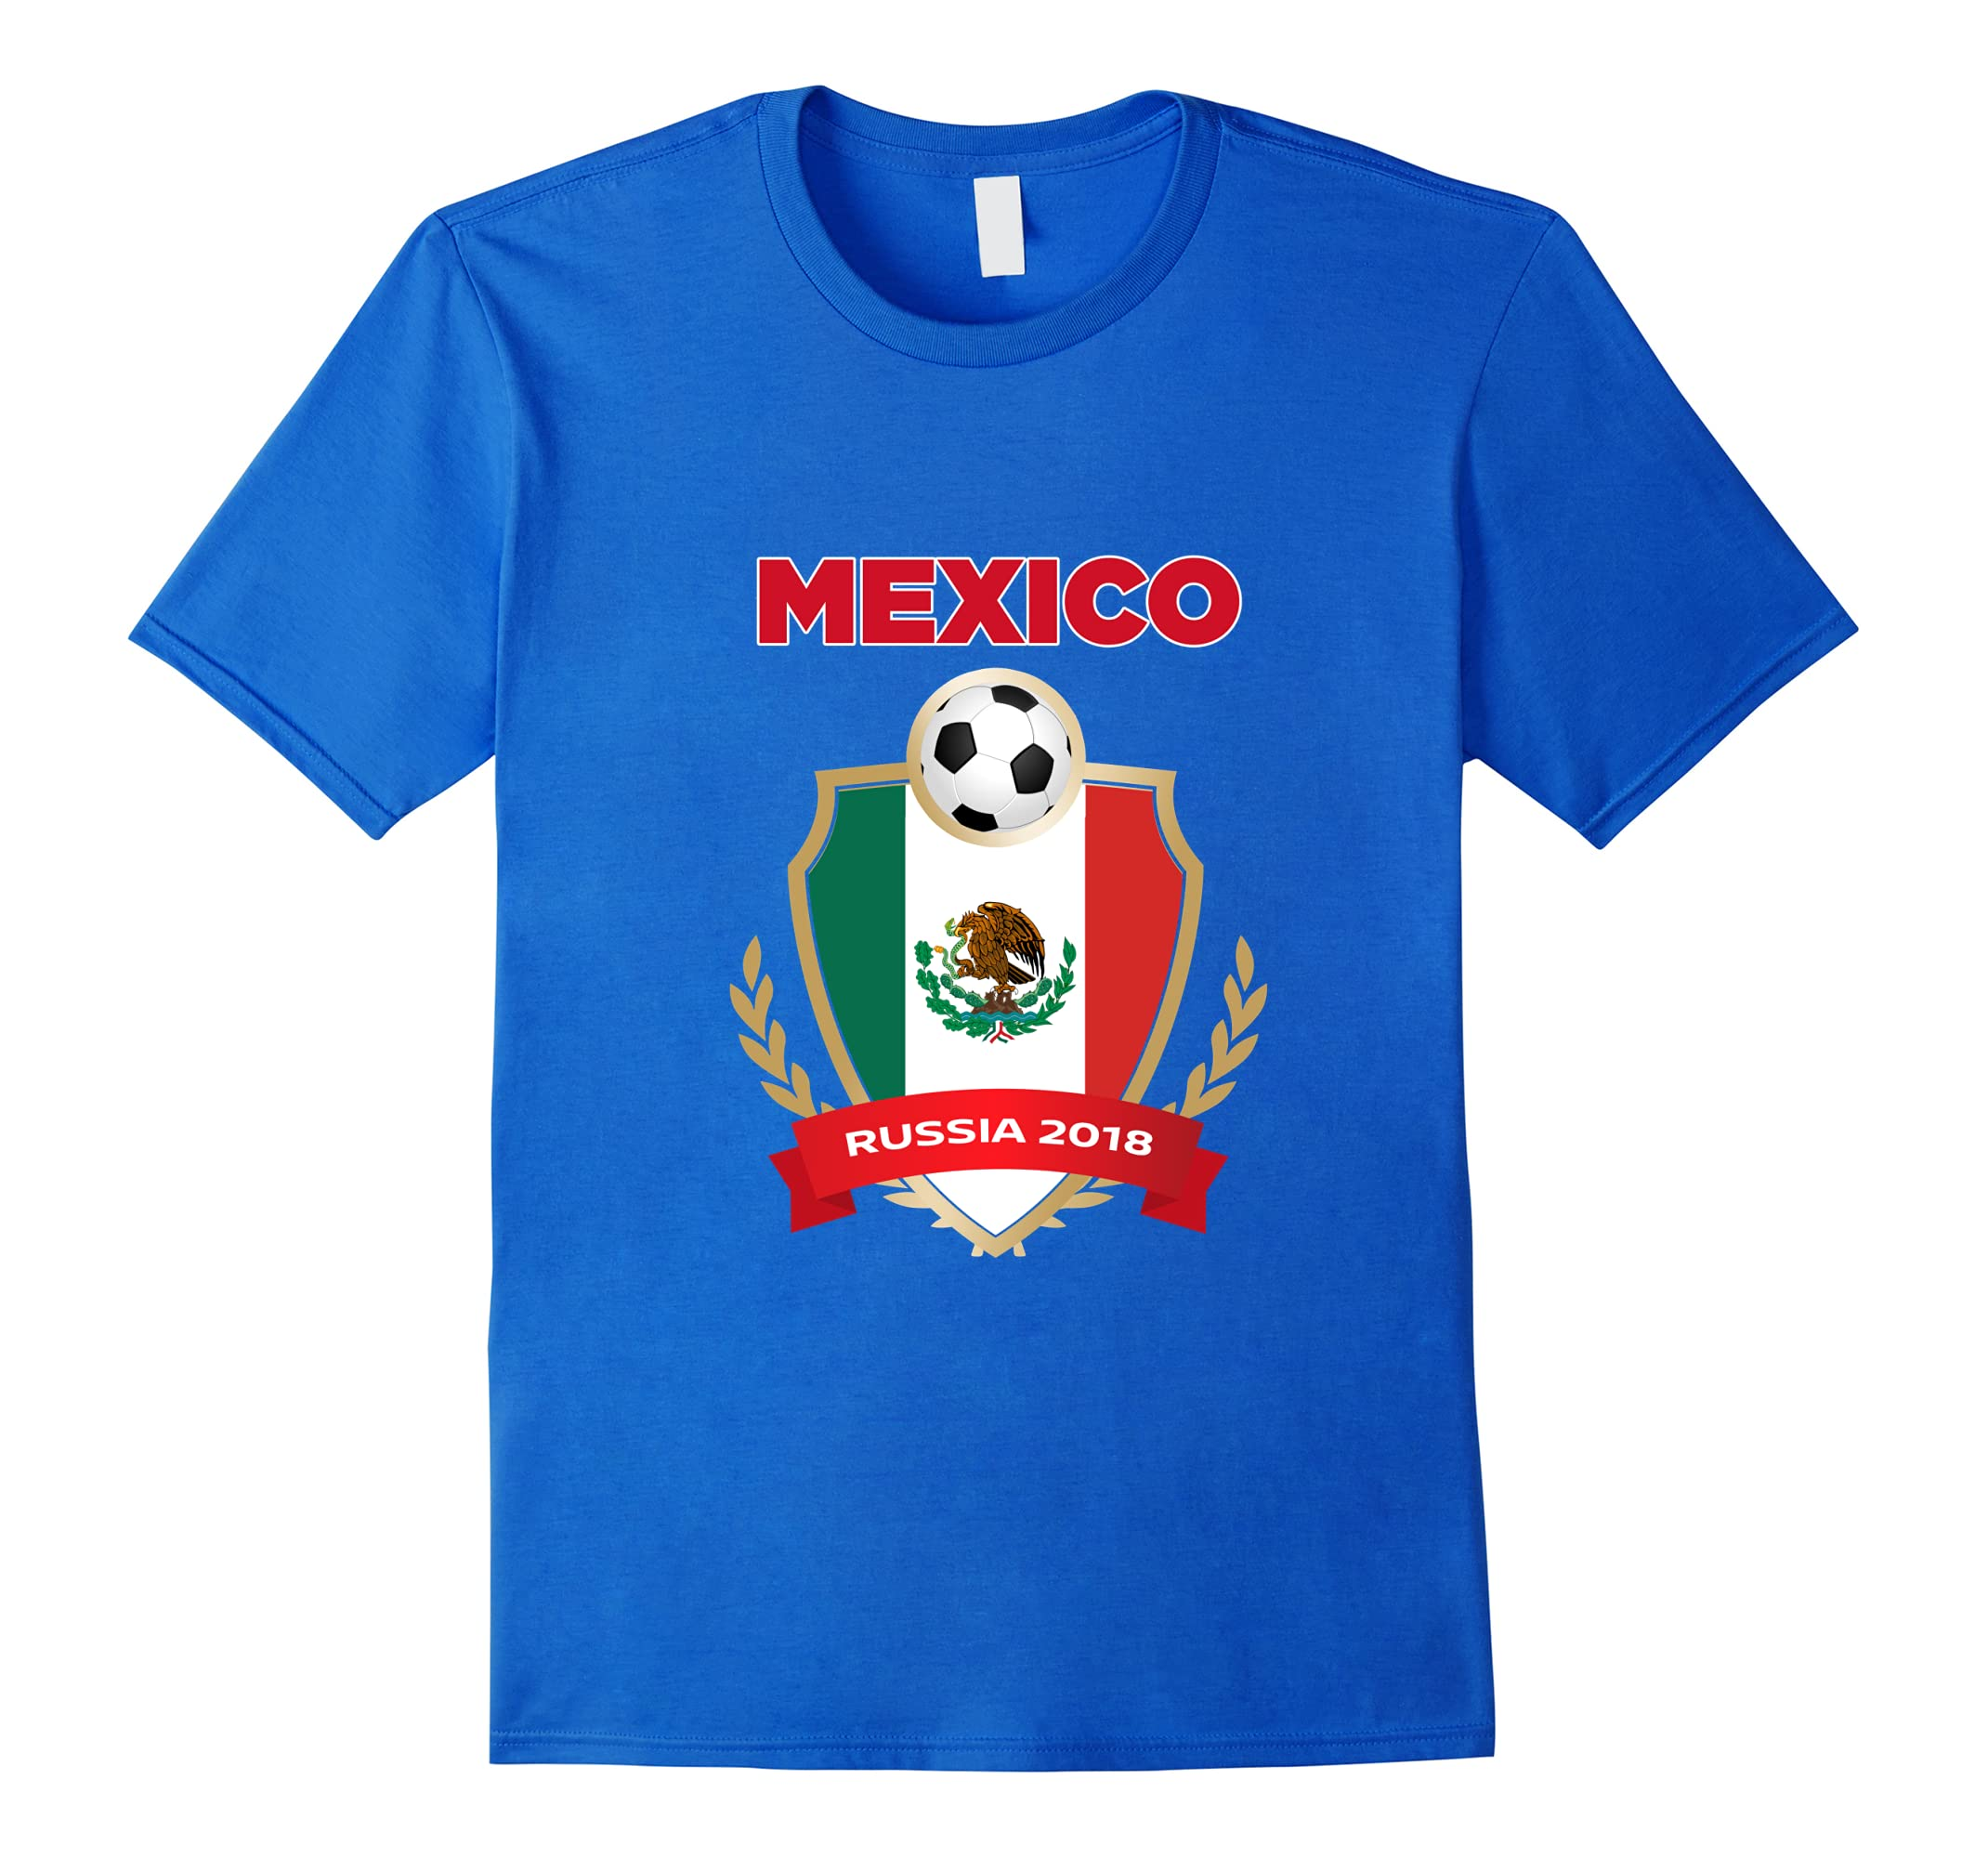 4c2e28b81 Mexico Soccer World Championship Cup Russia 2018 Football-RT ...